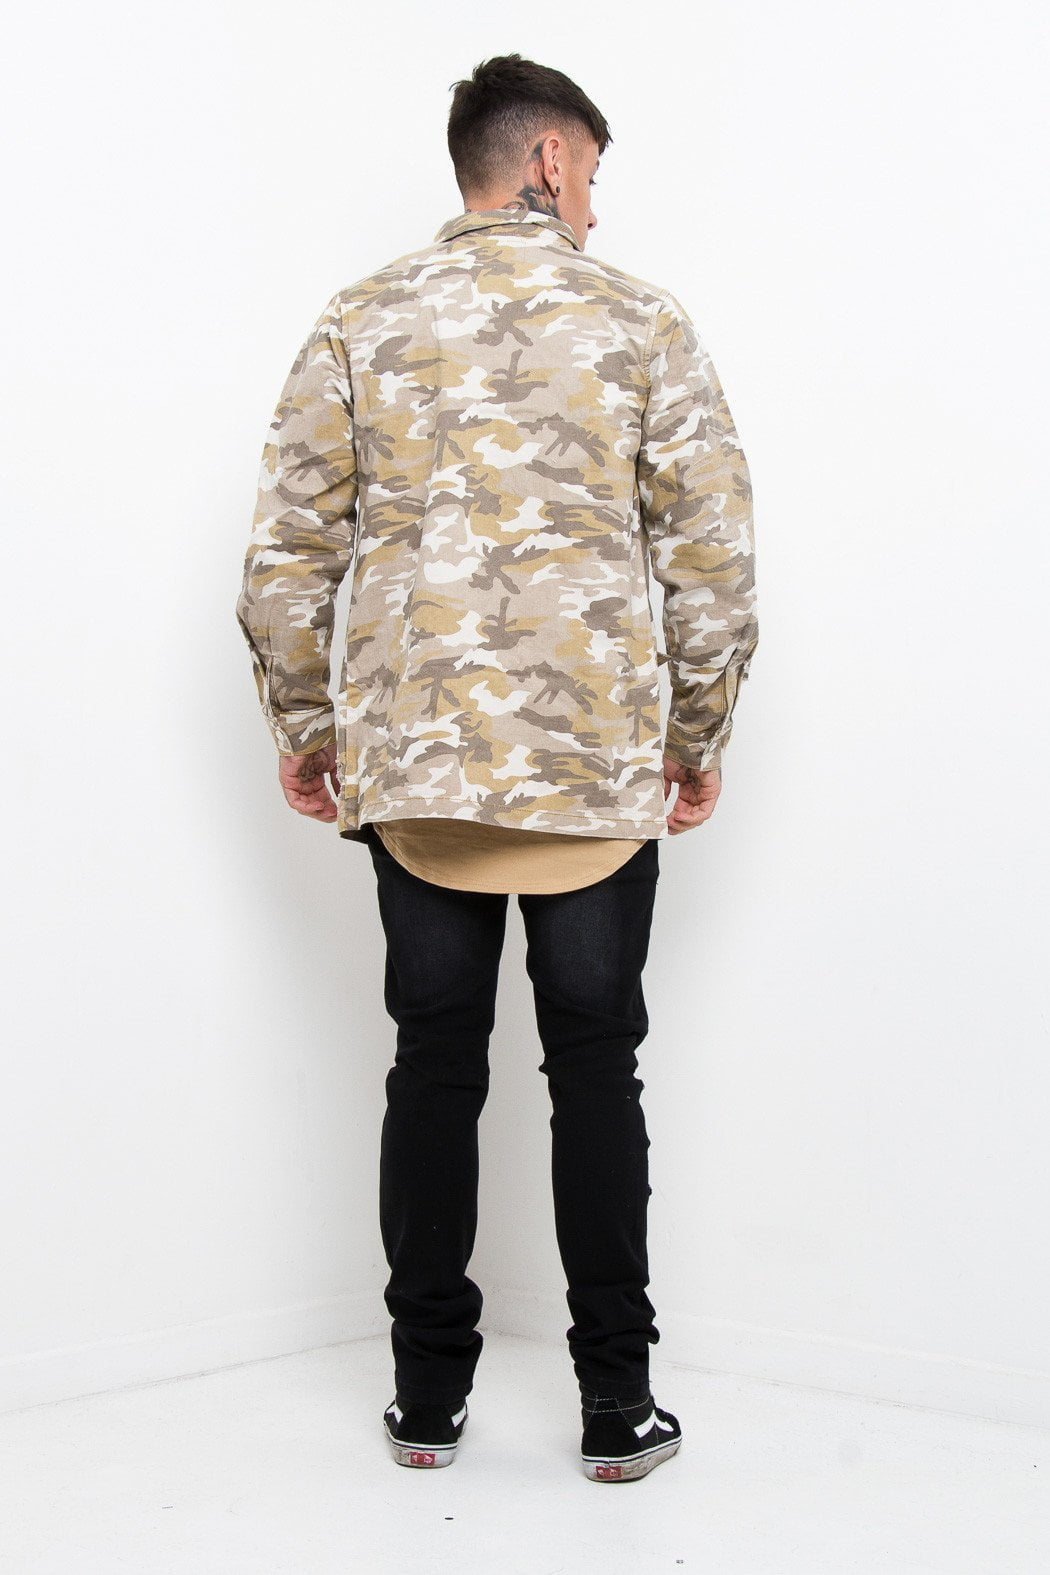 Sand Camo Distressed Jacket - Liquor N Poker  Liquor N Poker